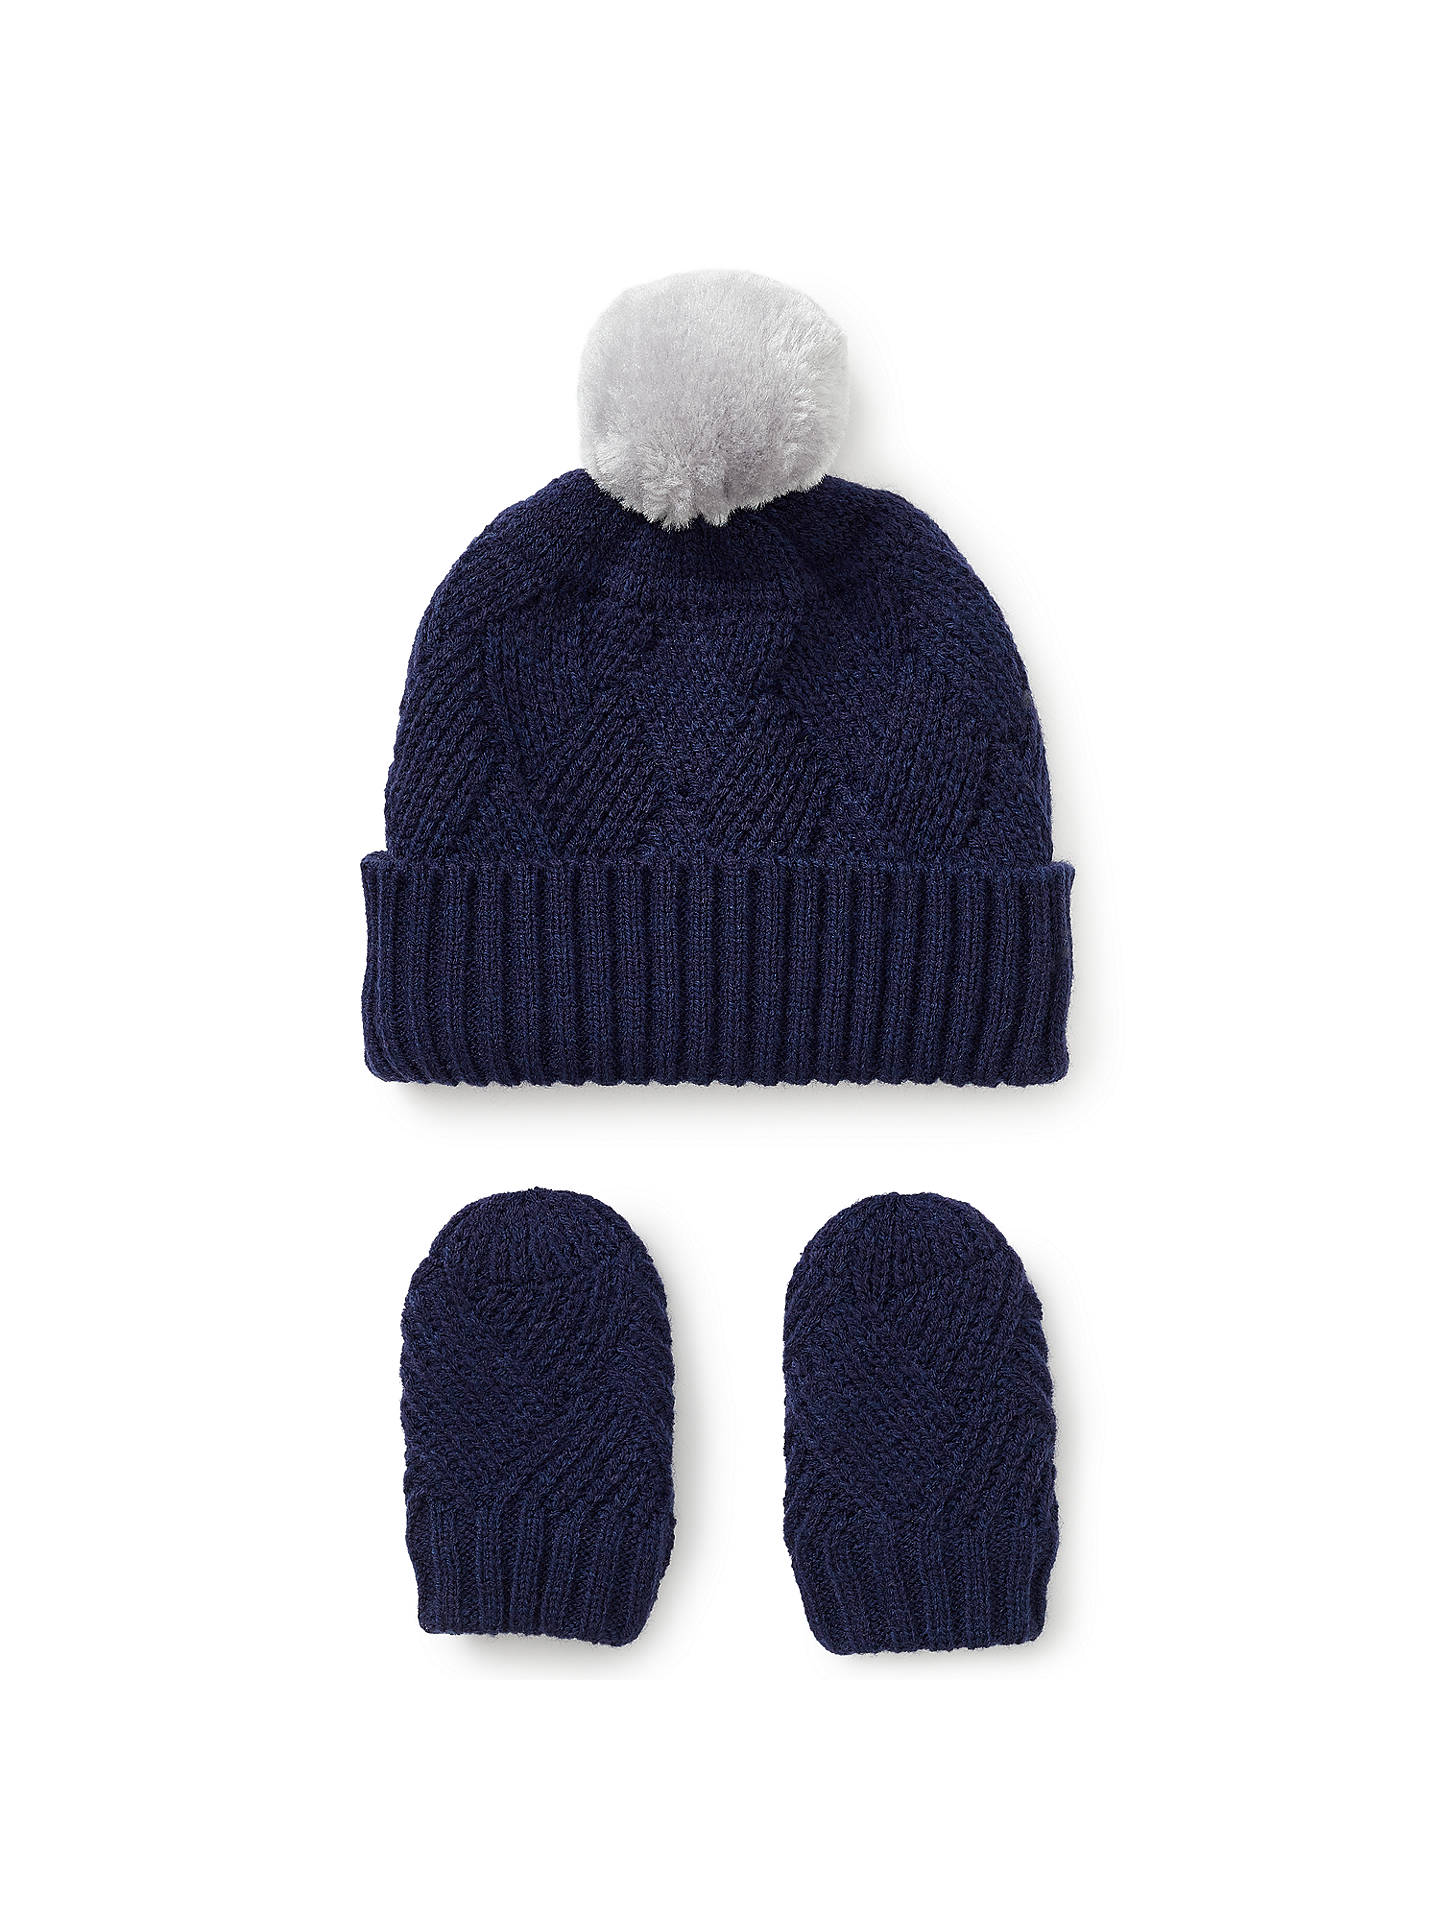 BuyJohn Lewis   Partners Baby Cross Knit Hat and Mittens Set 74a33085104b